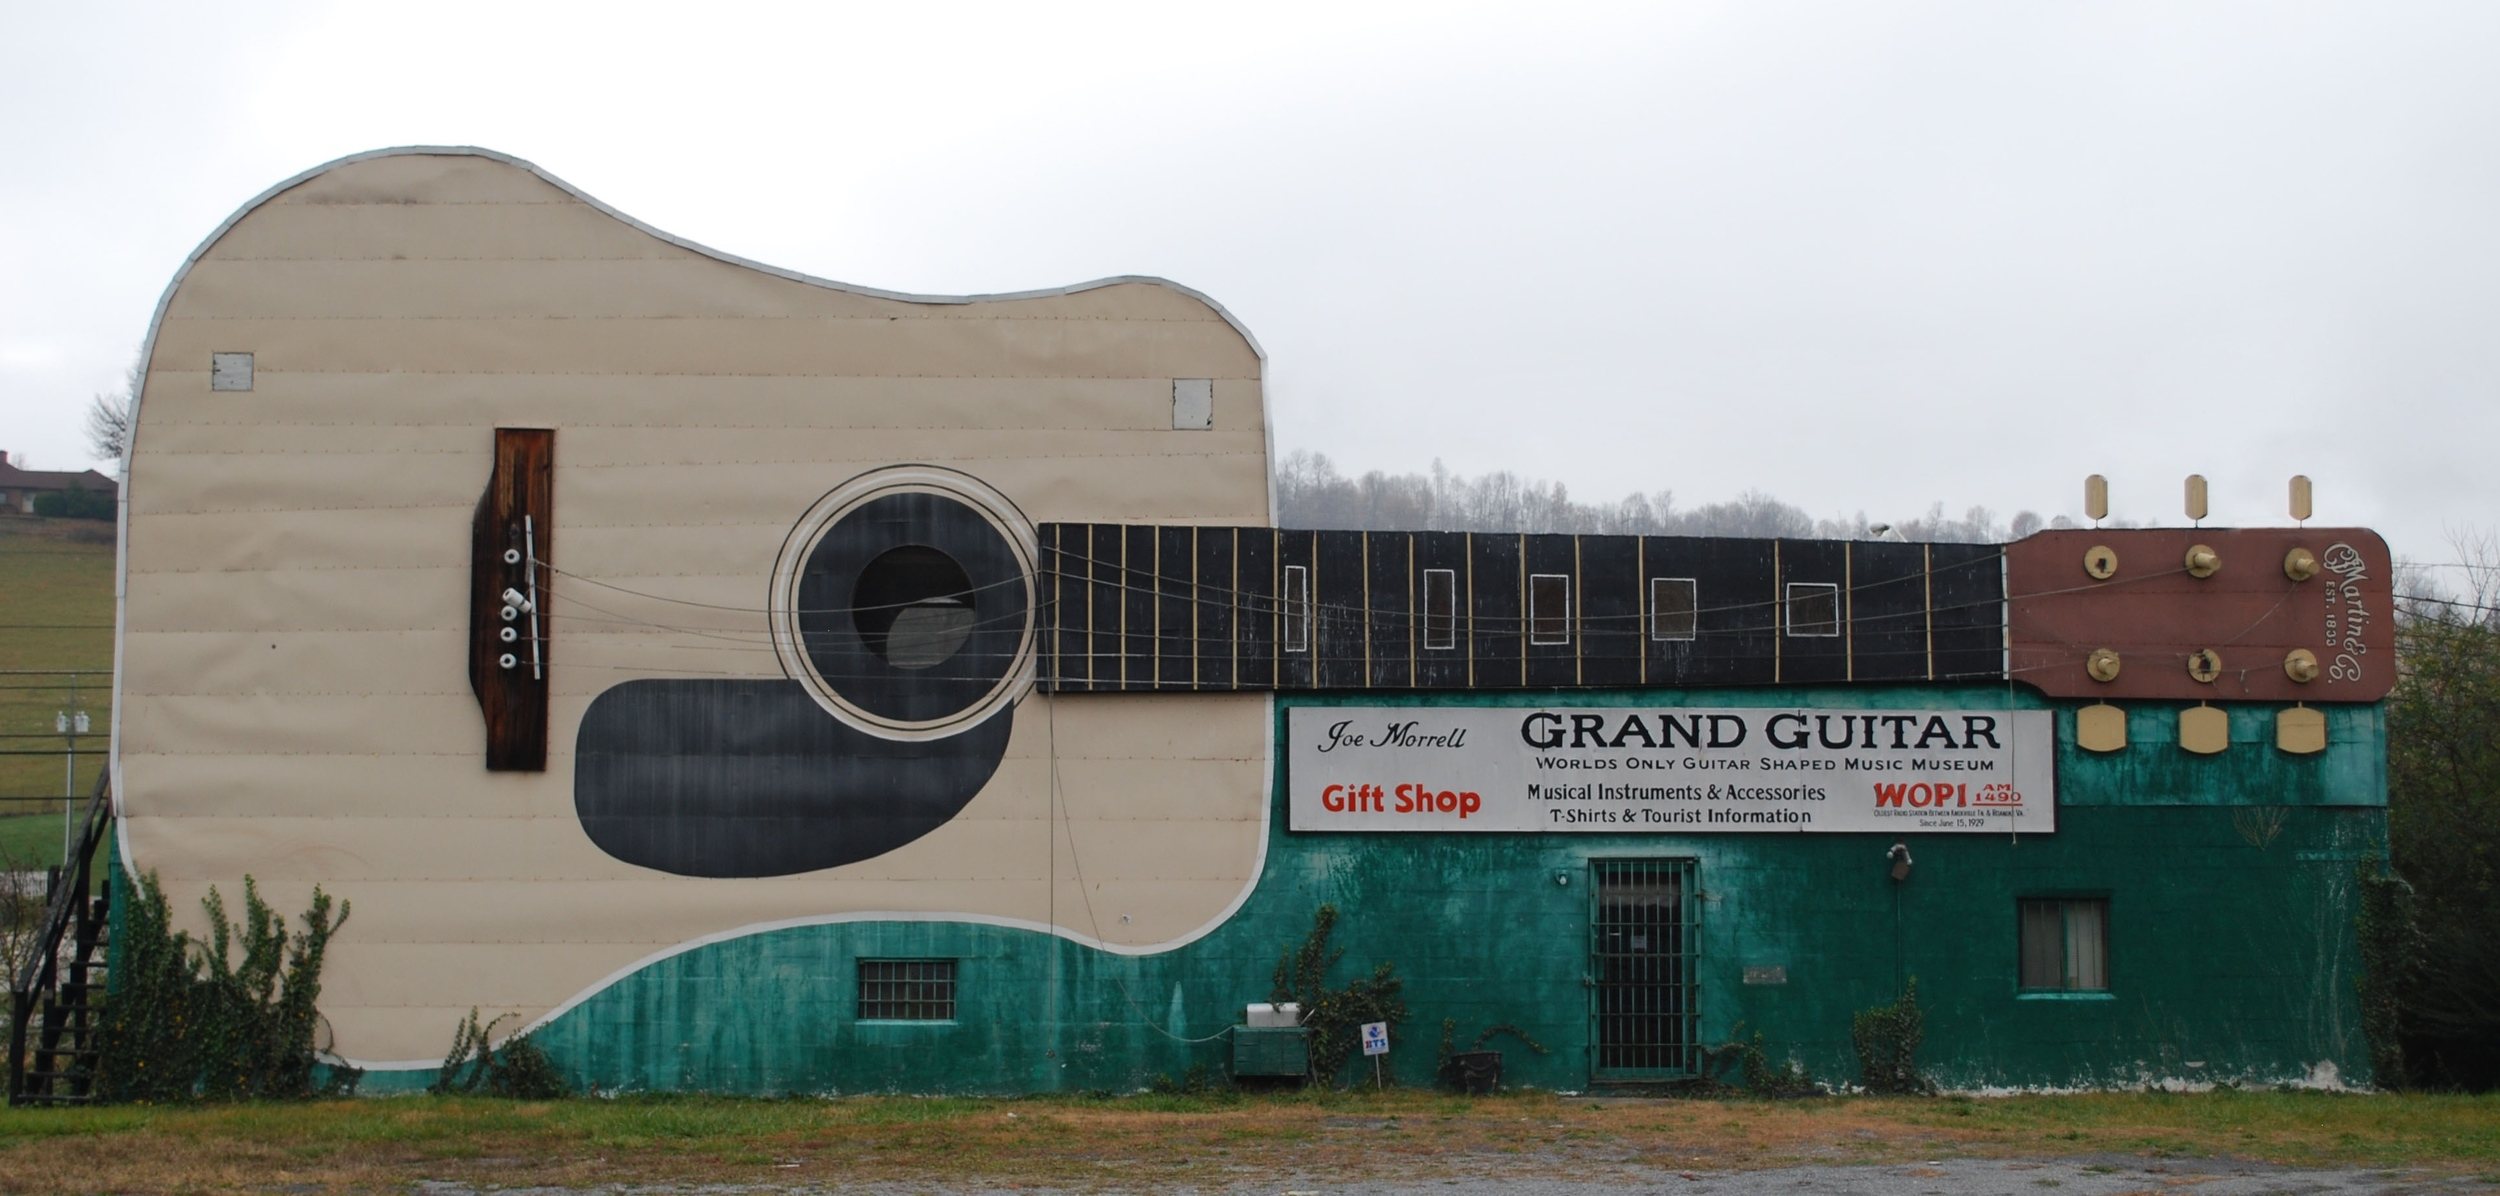 Grand Guitar | Bristol, TN | Source: Creative Commons